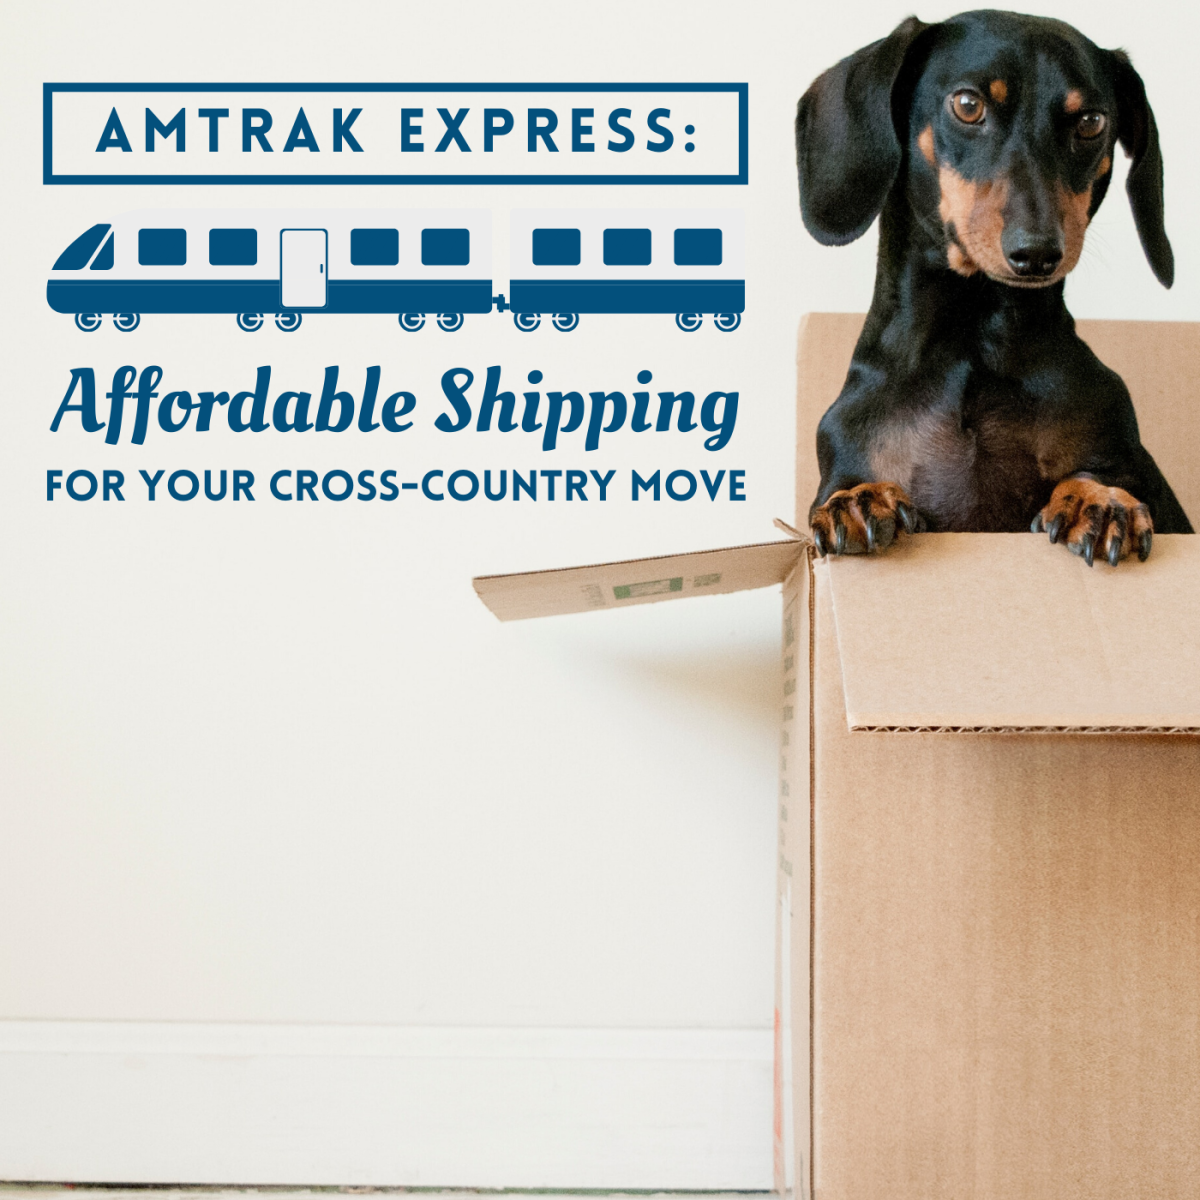 Moving Across the Country Cheaply with Amtrak Express Shipping